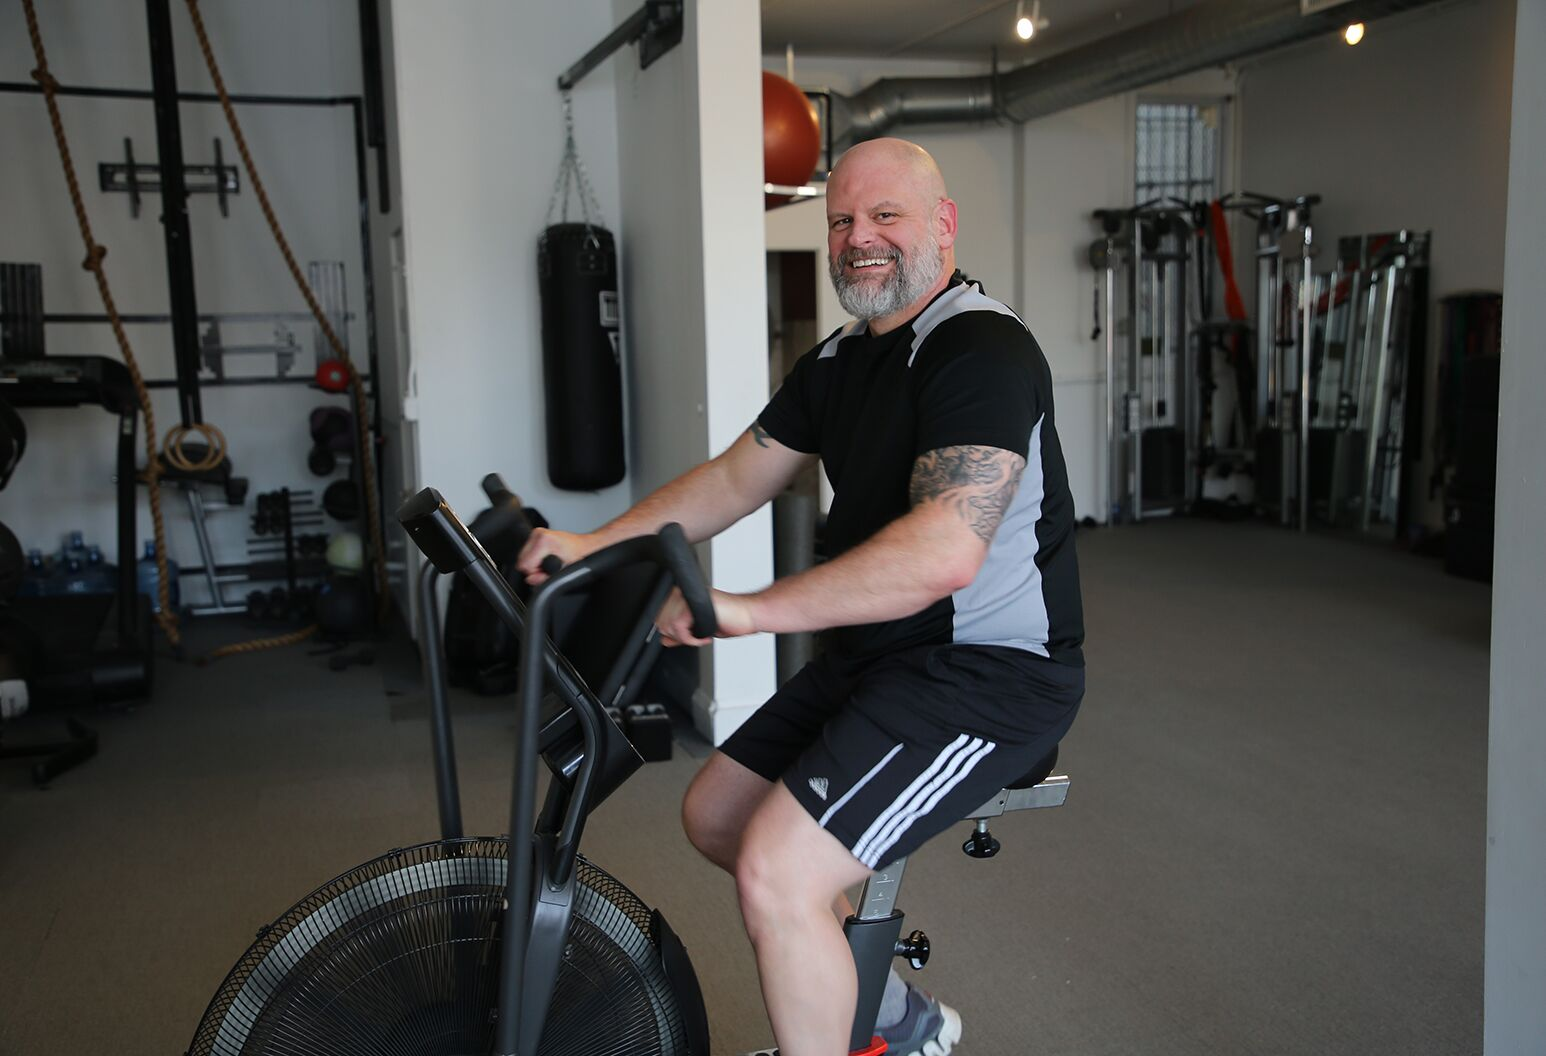 Smiling man in his mid-40s with a beard and tattoos, riding a stationary bicycle.